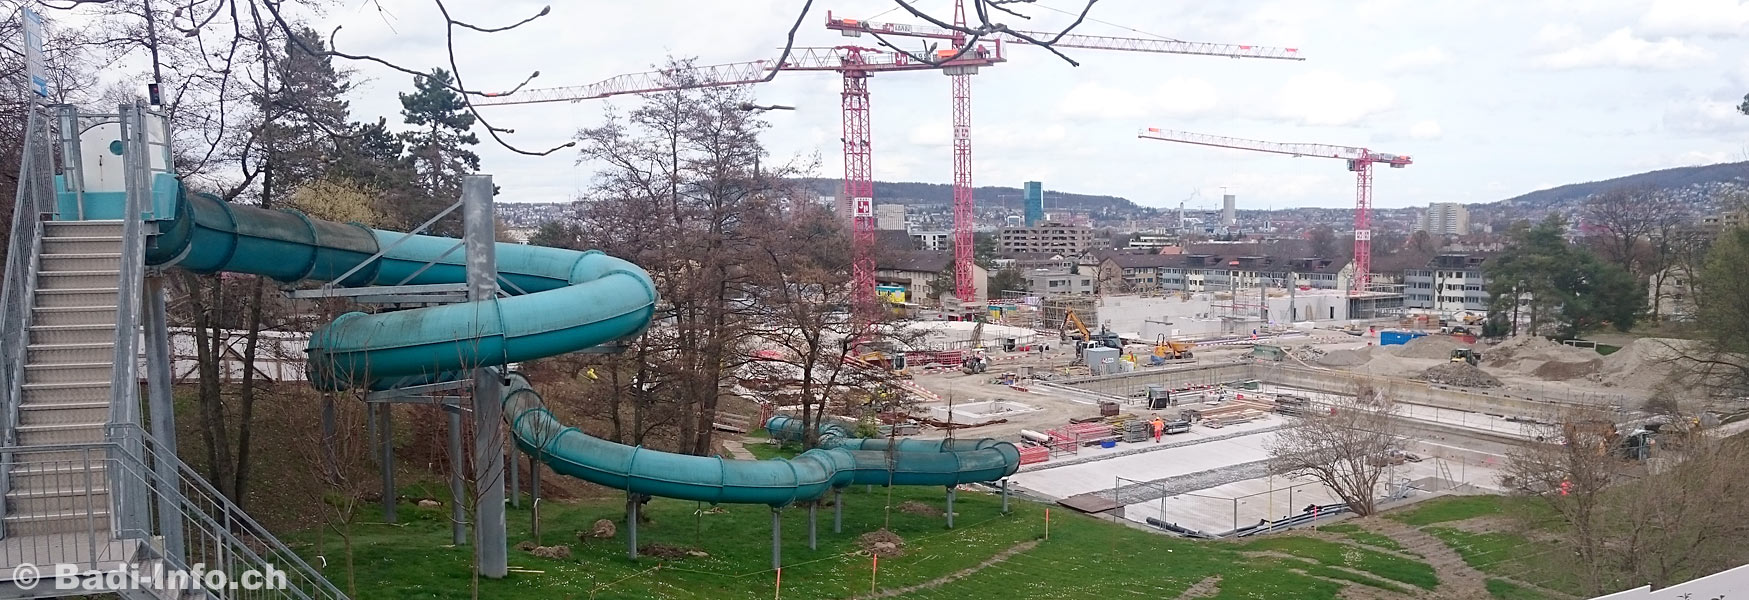 Baustelle Schwimmbad Heuried